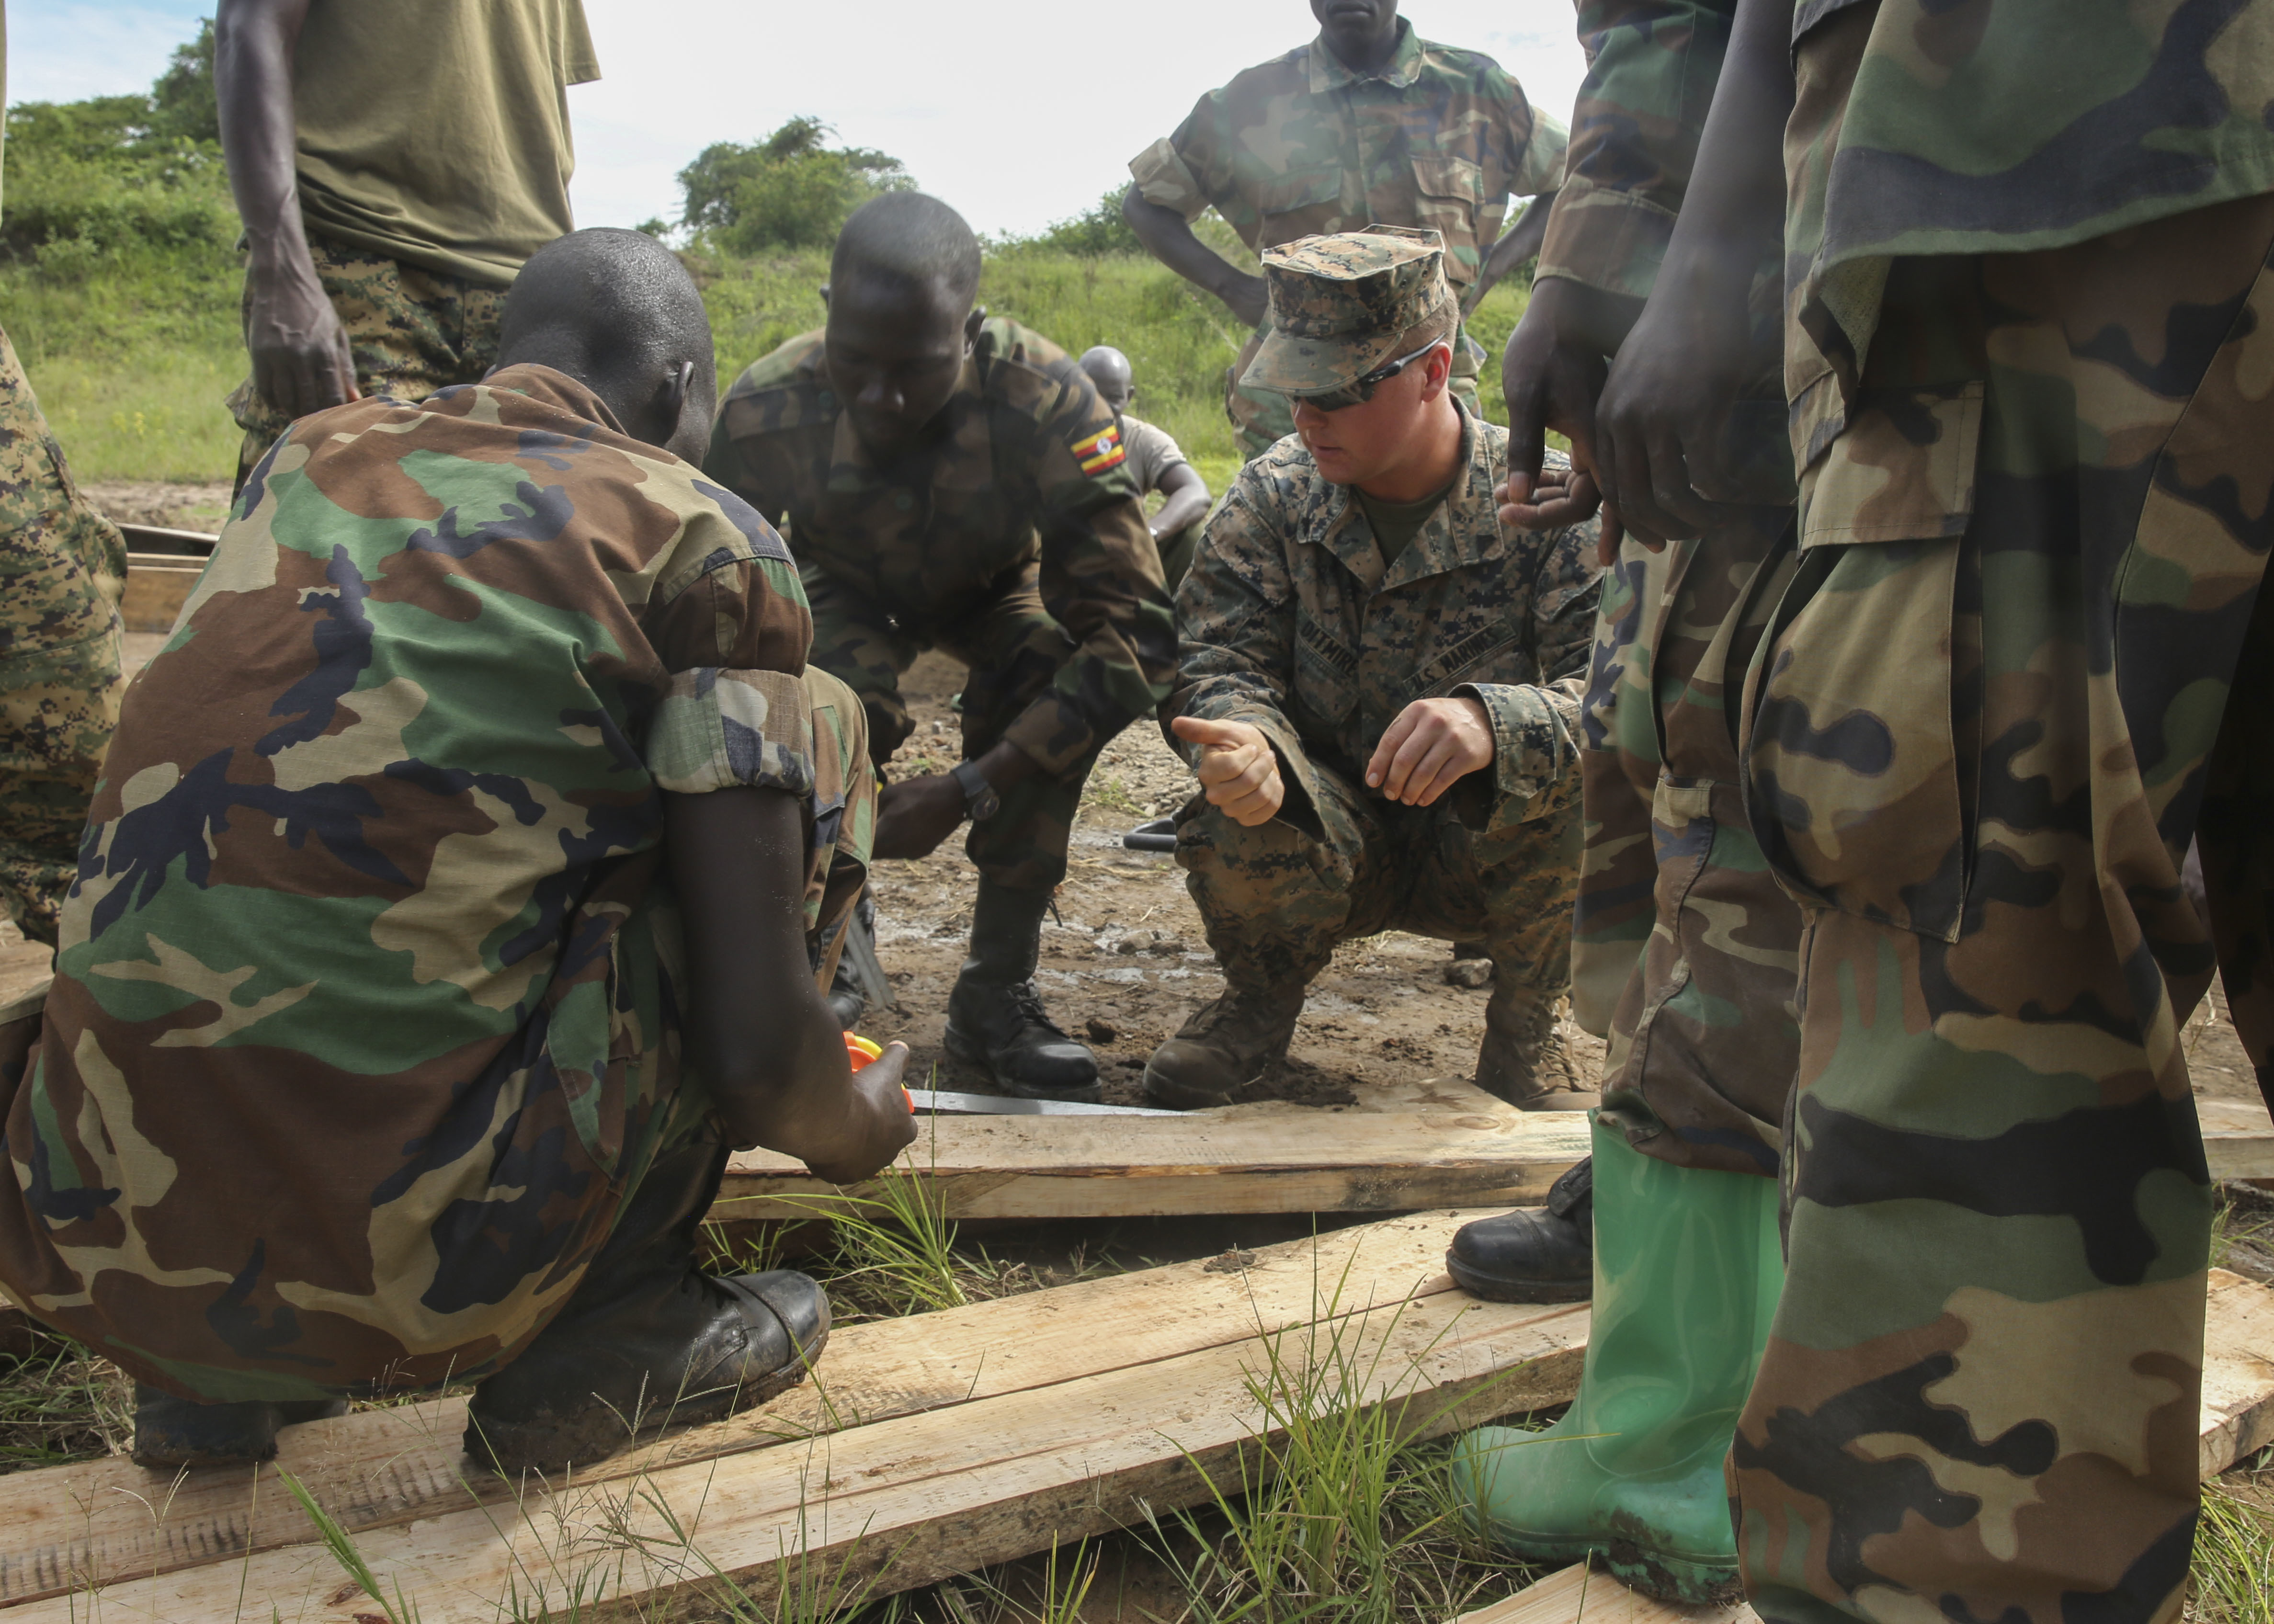 U.S. Marine Cpl. Brandon Ditmire, a combat engineer with Special-Purpose Marine Air-Ground Task Force Crisis Response-Africa, gives a thumbs-up to a Uganda People's Defense Force soldier during a civil engineering exercise at Camp Singo, Nov. 16, 2015. The exercise helps the partner nations fortify their civil engineering skills while strengthening the bond between the two. (U.S. Marine Corps photo by Cpl. Olivia McDonald/Released)